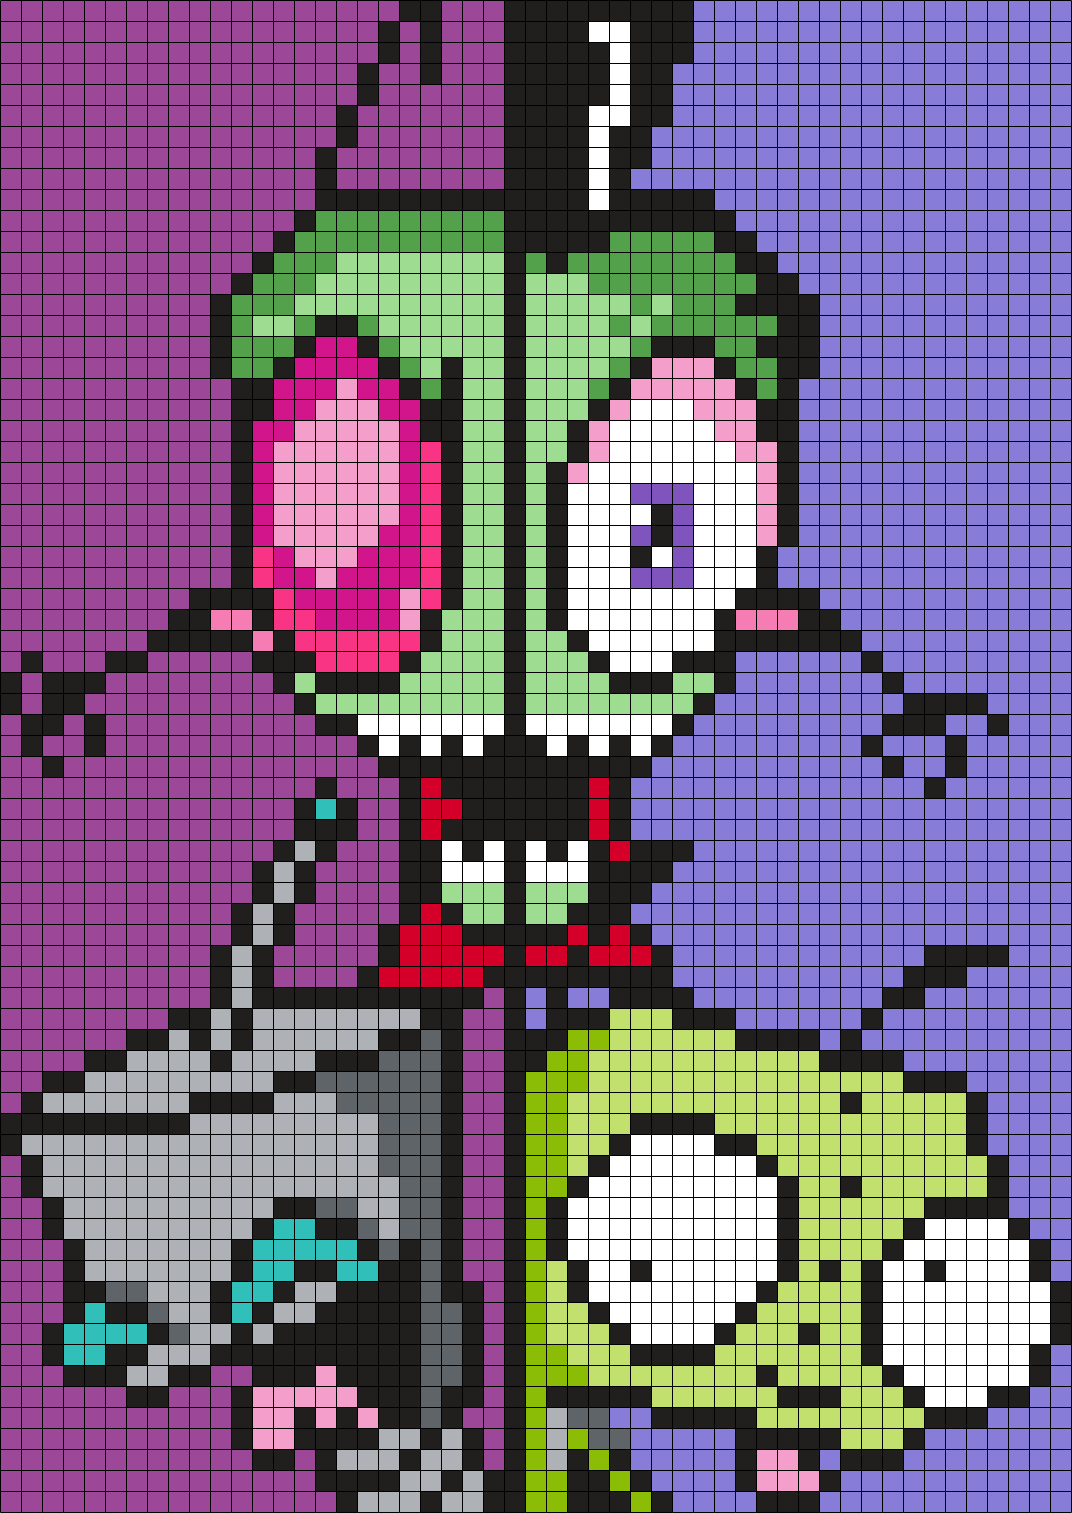 Invader Zim And Gir,  2 Halves Poster (Square)